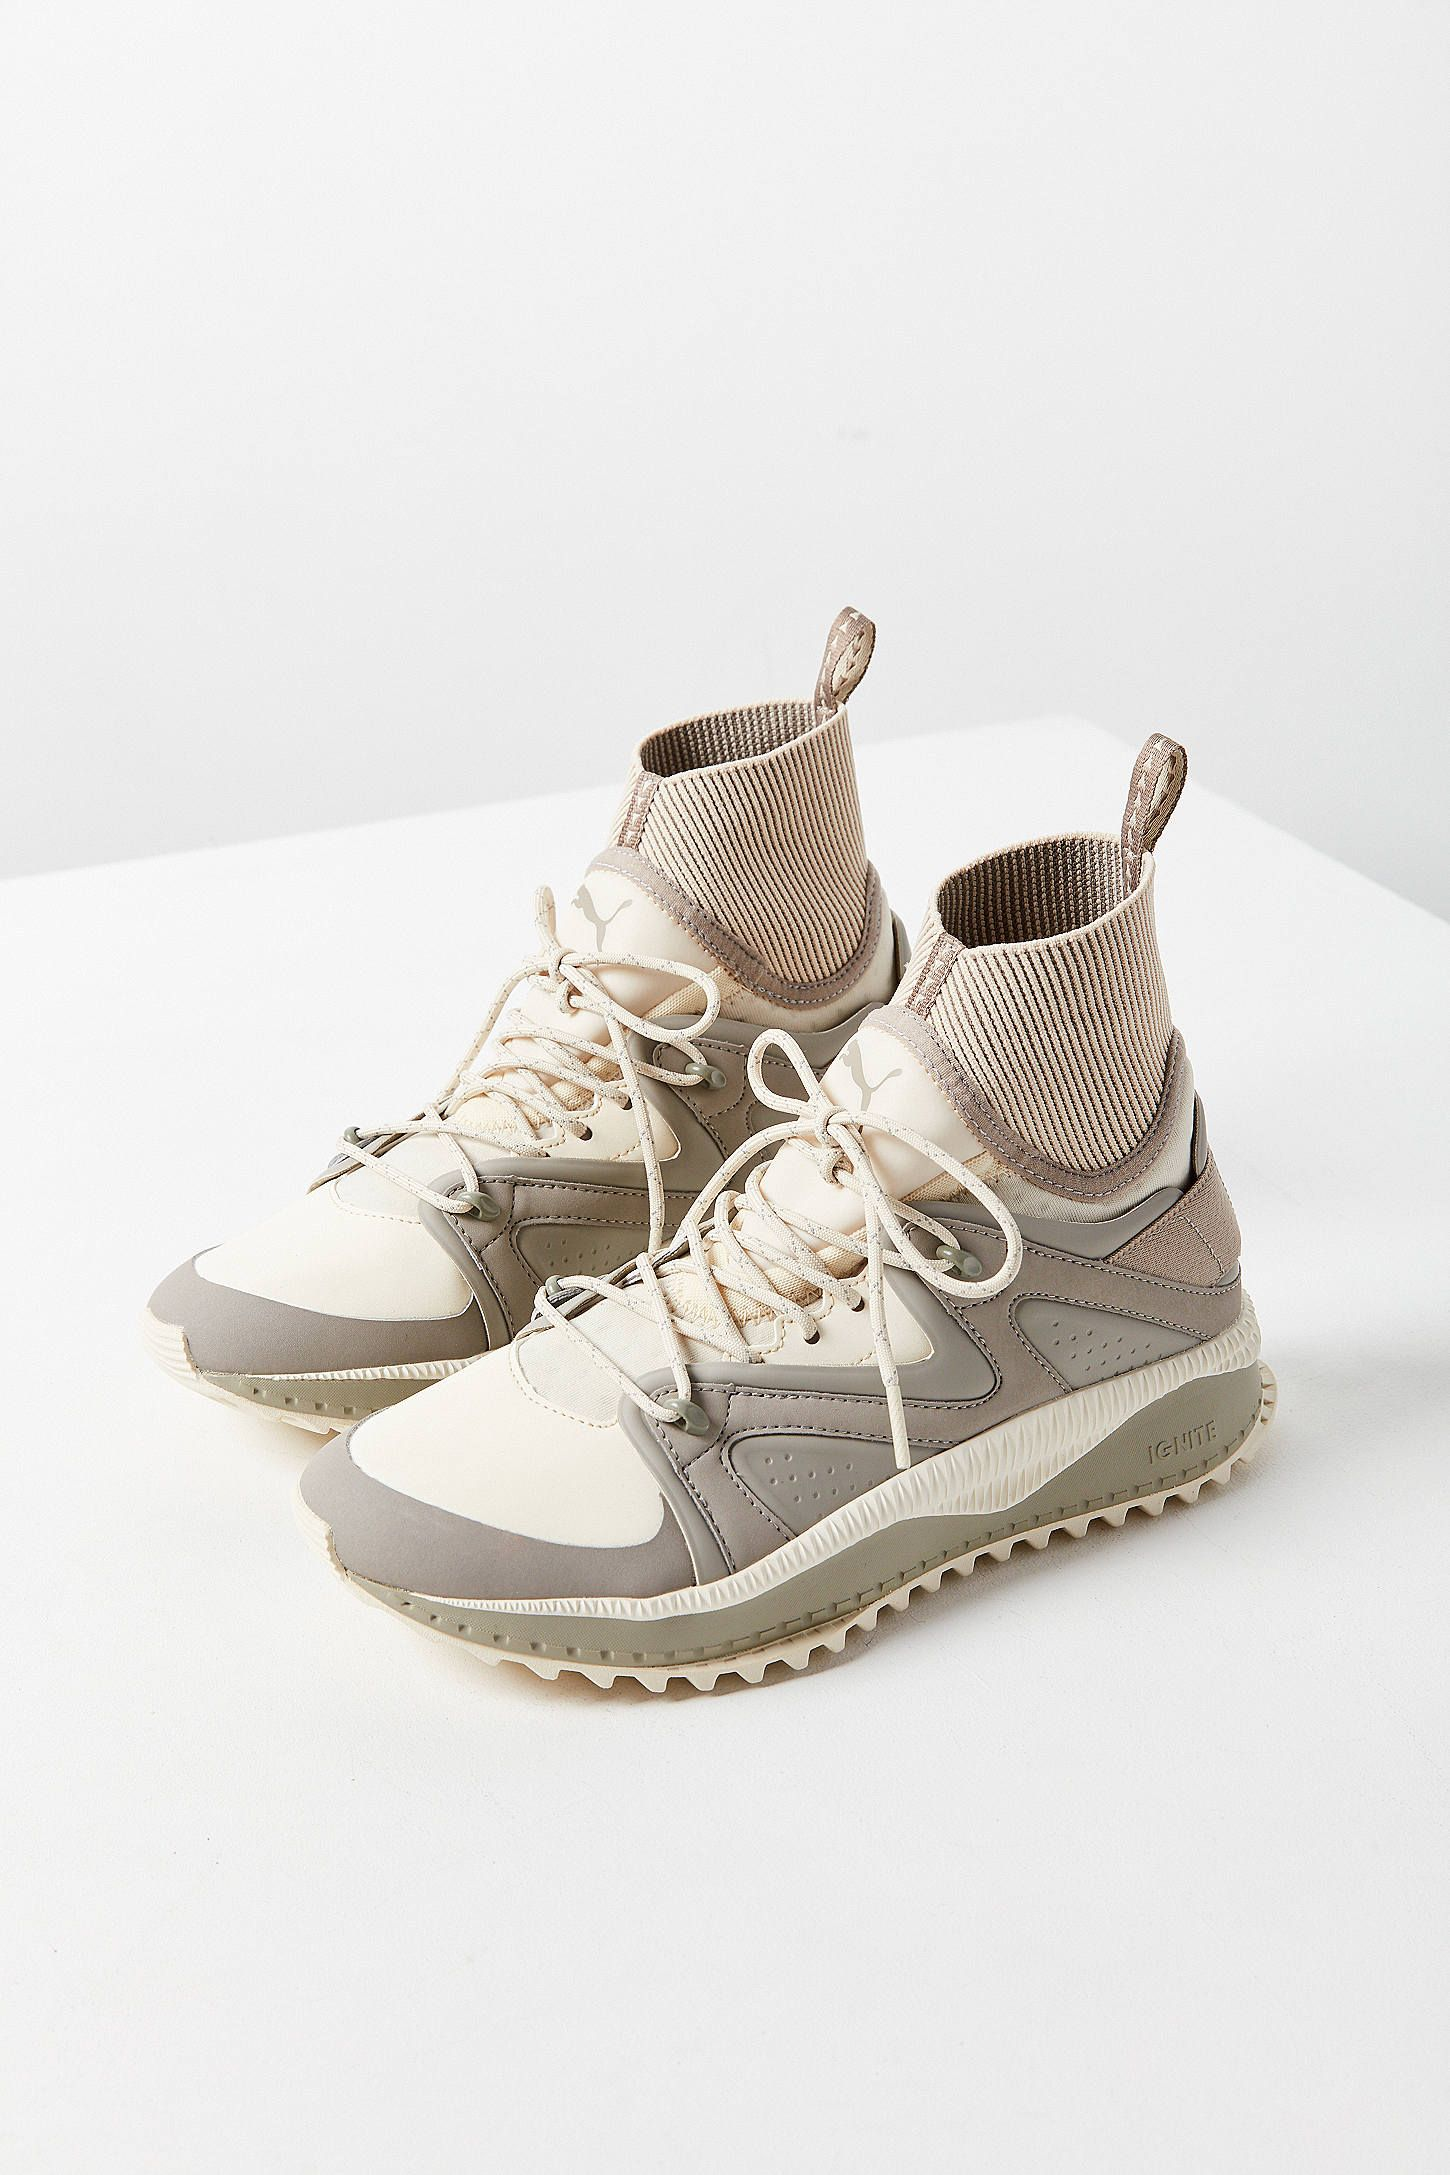 aa4431fd1ed Shop Puma Tsugi Kori Hi Training Sneakerboot at Urban Outfitters today. We  carry all the latest styles, colors and brands for you to choose from right  here.